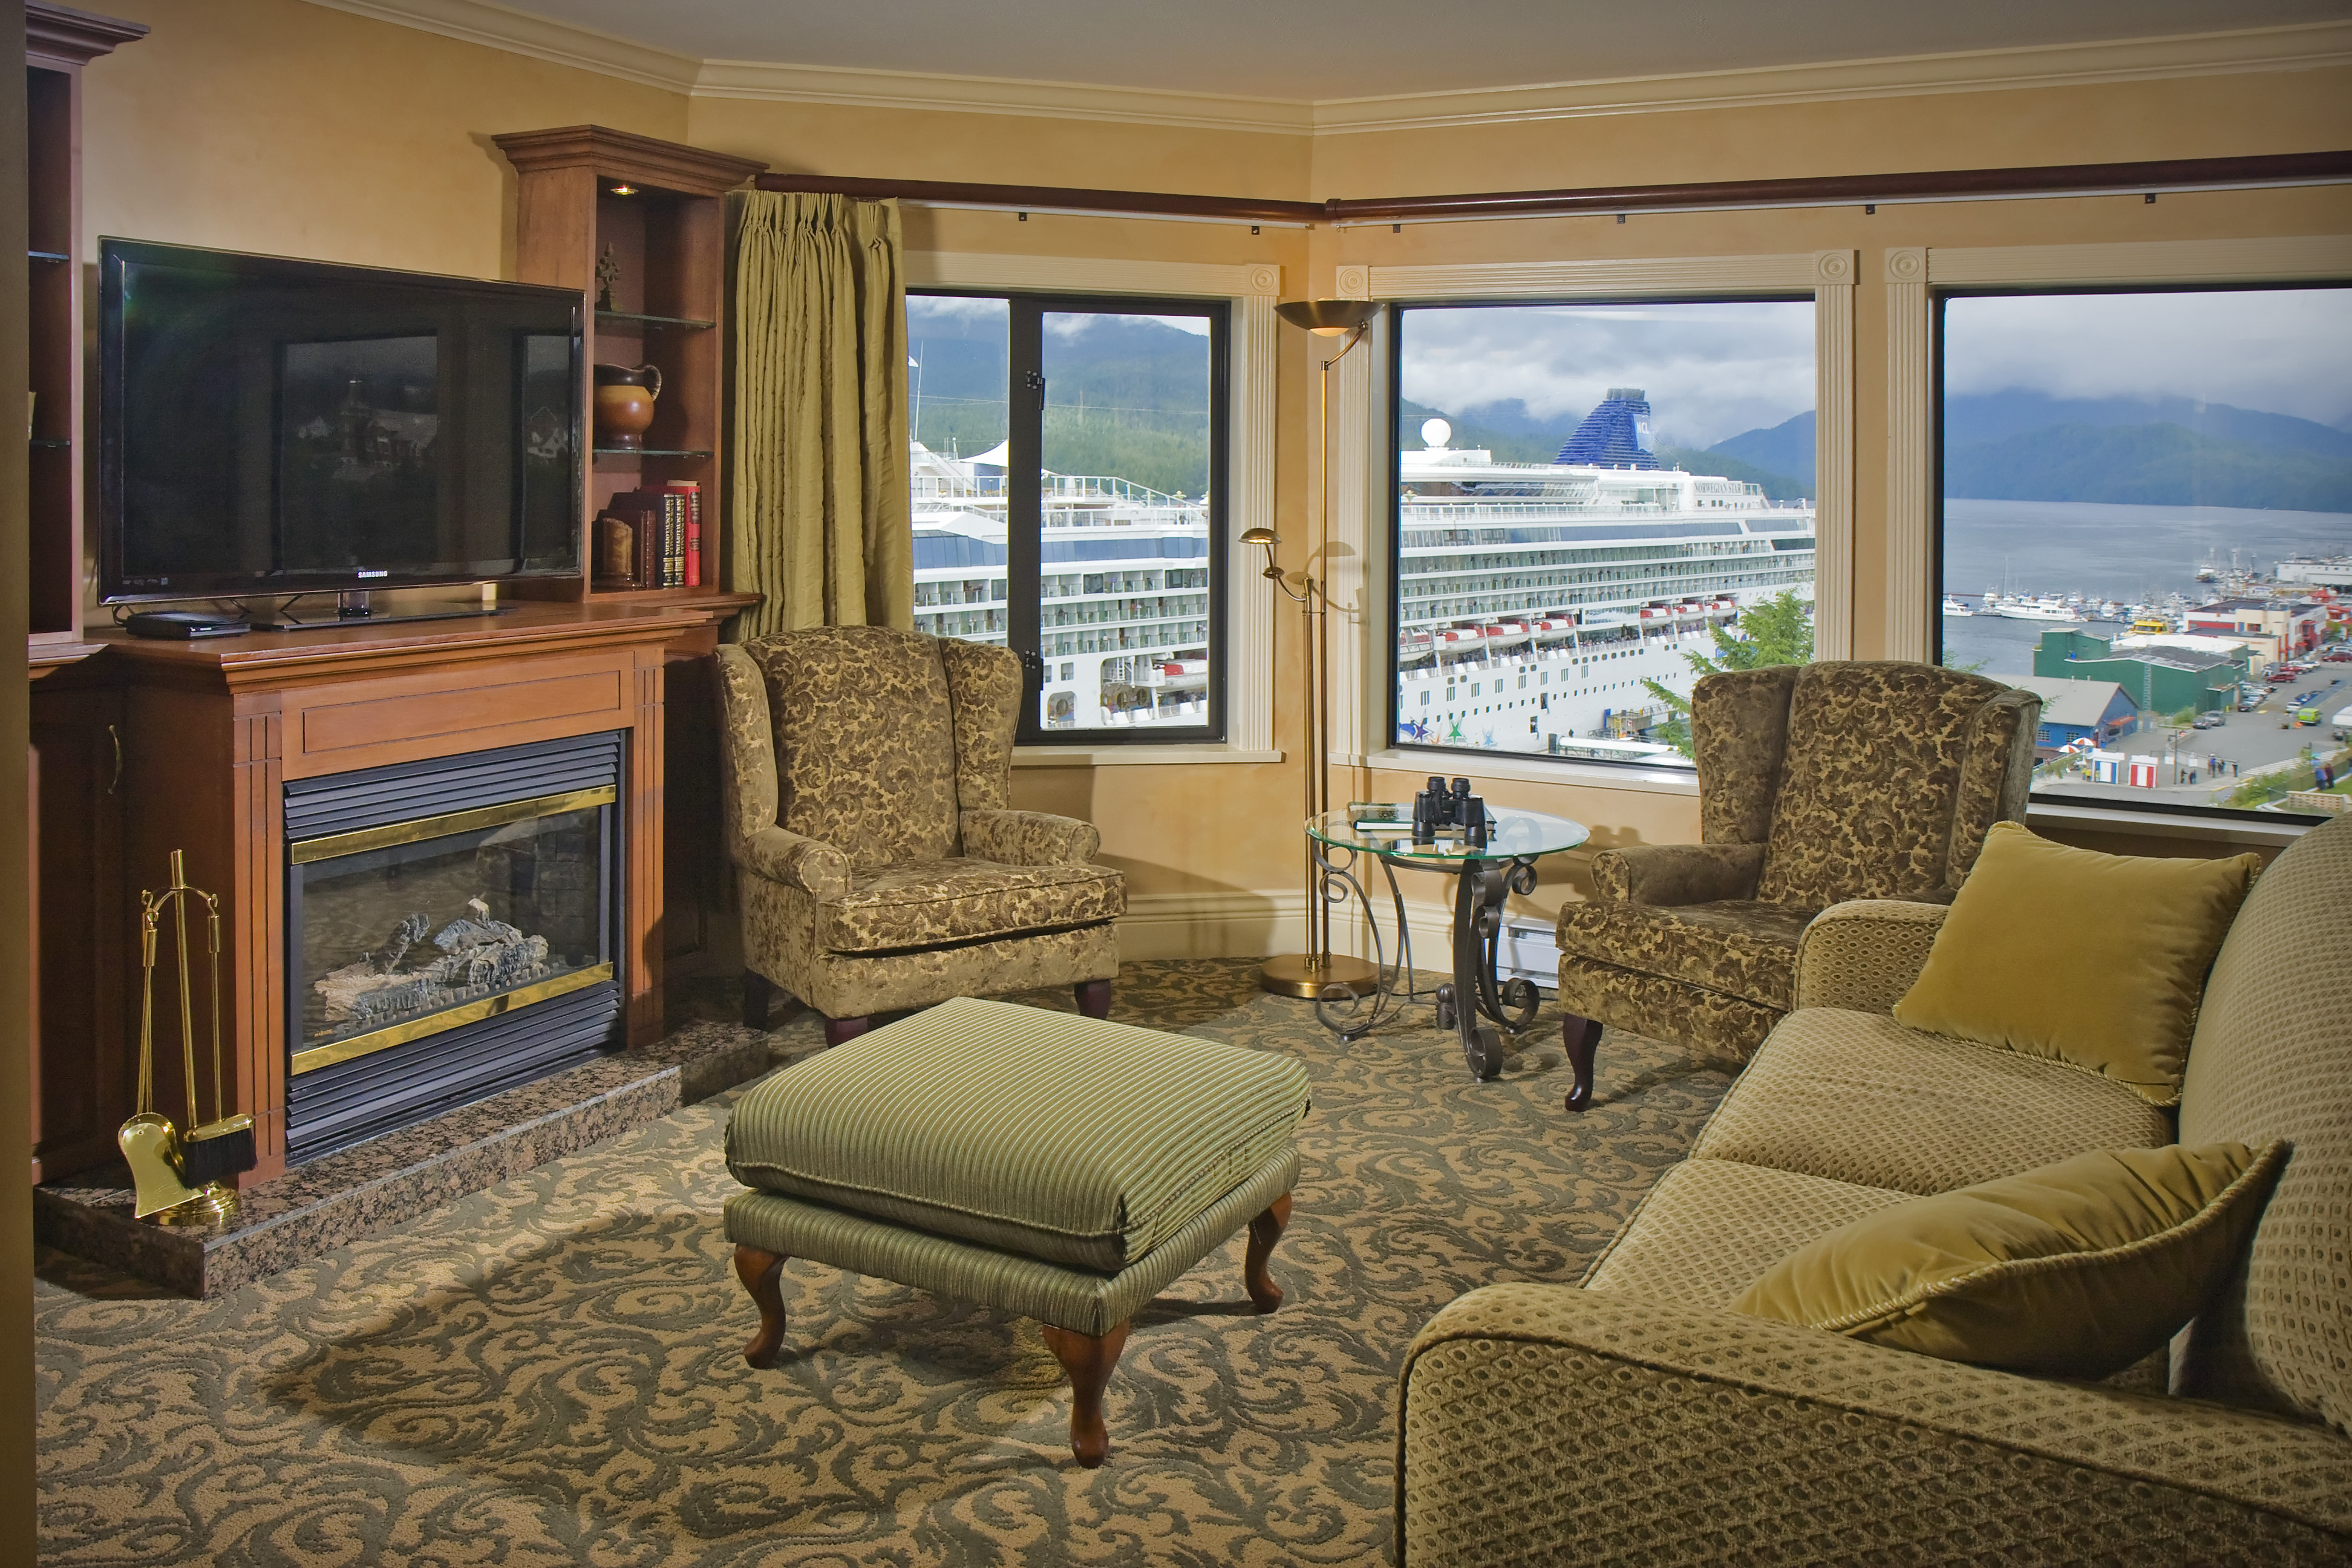 crest-hotel-fireside-cruise-view